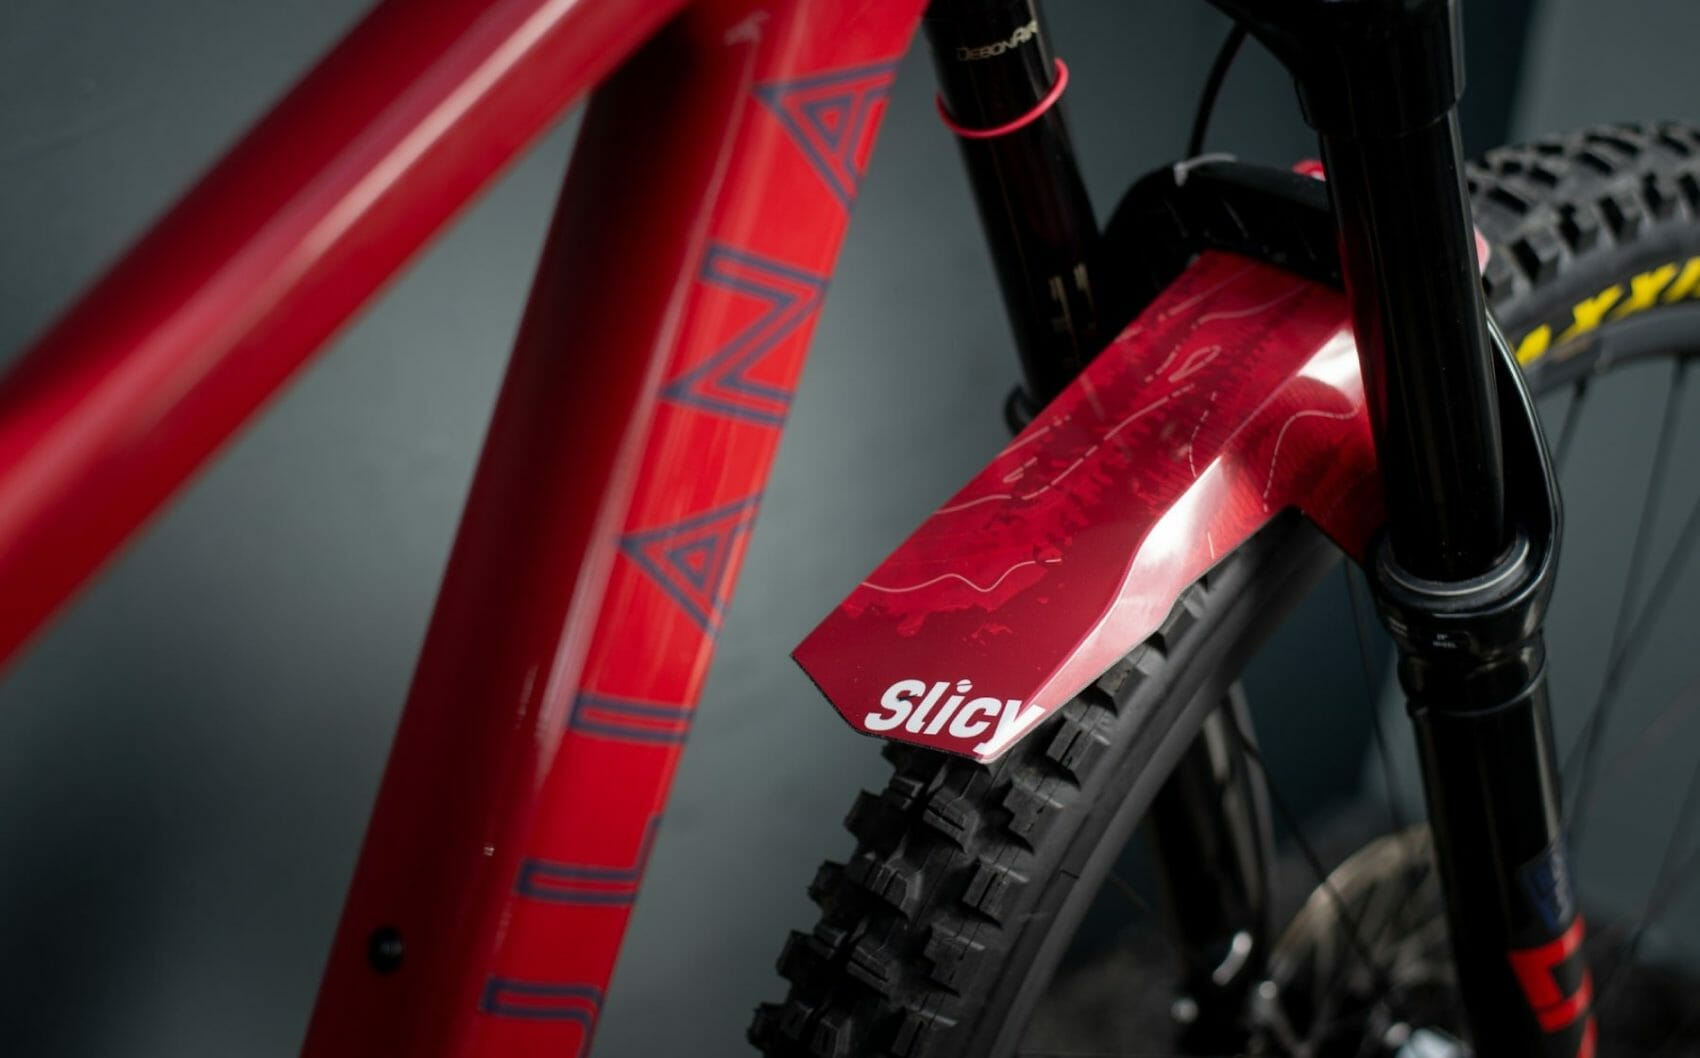 Cyclorise introduce Slicy Products to the UK